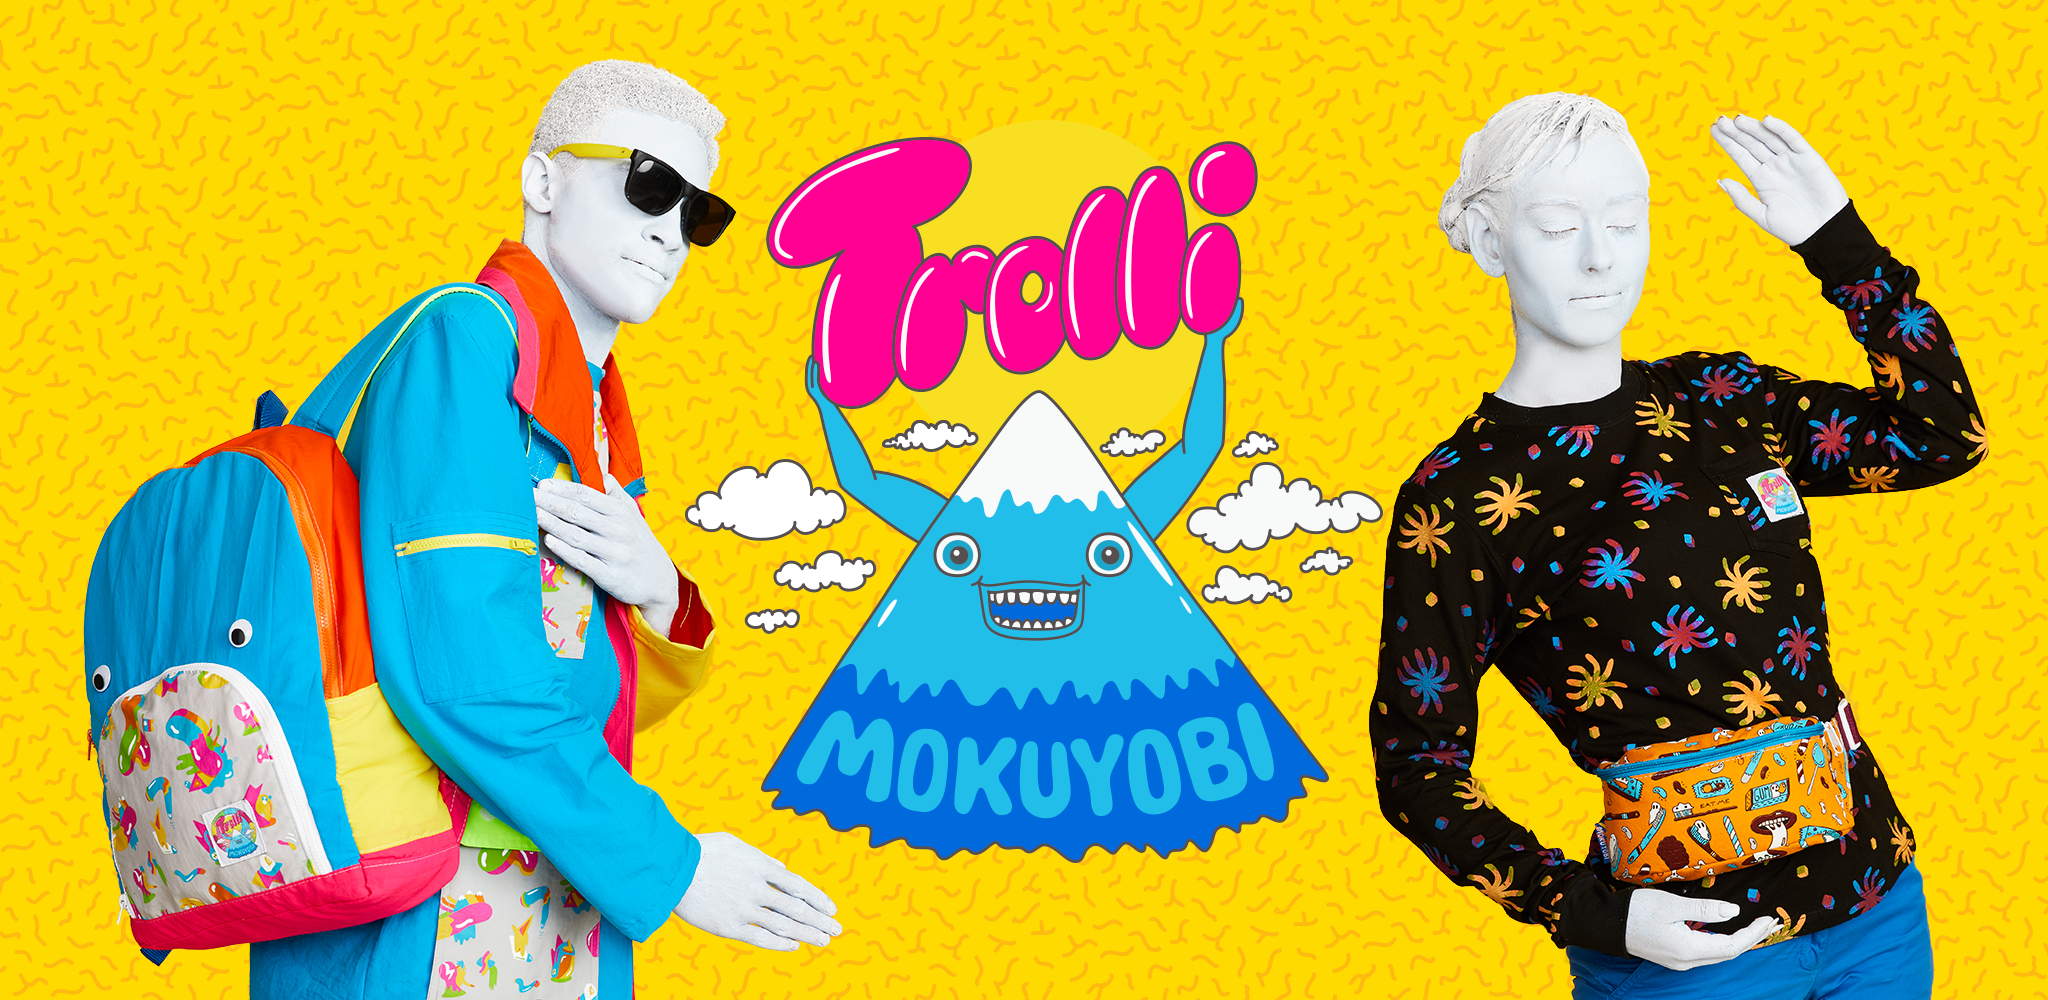 "Trolli X Mokuyobi Collaboration Campaign  ""Weirdly Woven""  Bodypainting/Hair/Makeup: Laura DuVall Makeup Artistry and Mark Navarro  Periscope Productions"